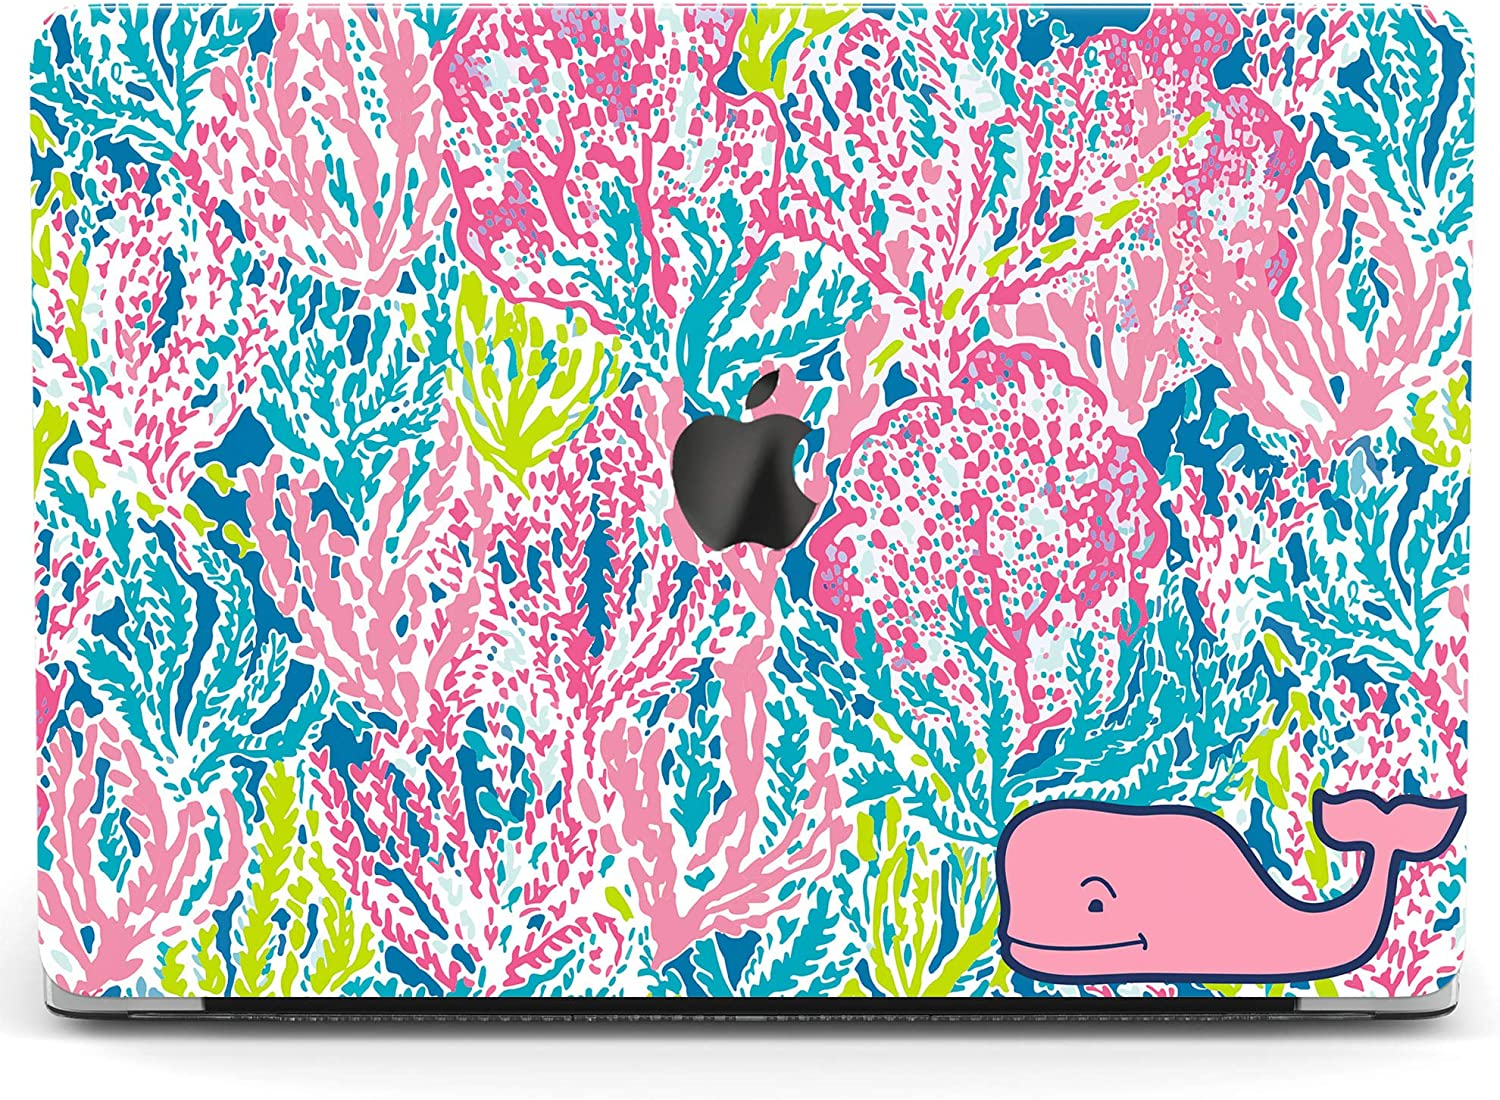 Wonder Wild Case for MacBook Air 13 inch Pro 15 2019 2018 Retina 12 11 Apple Hard Mac Protective Cover Touch Bar 2017 2016 2020 Plastic Laptop Print Colored Algae Coral Pink Whale Art